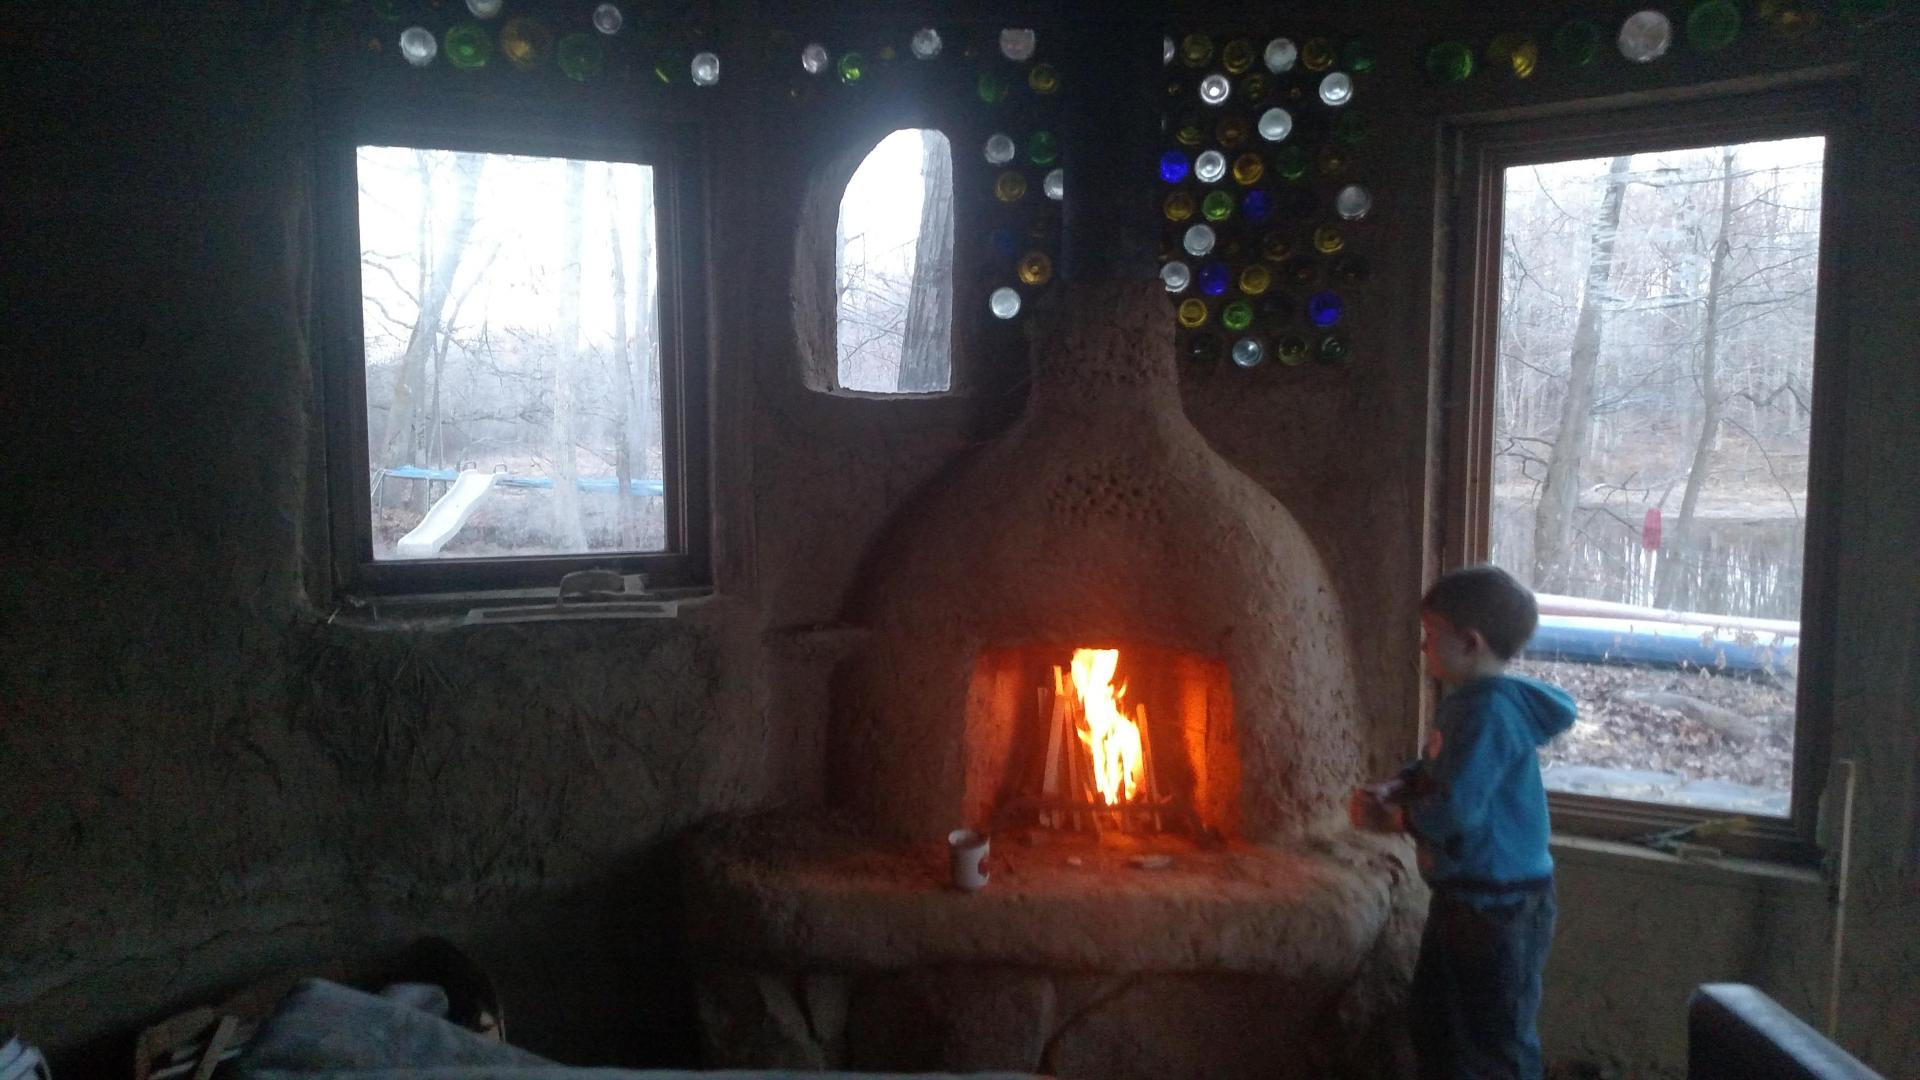 Firing up the Cob Rumford Fireplace